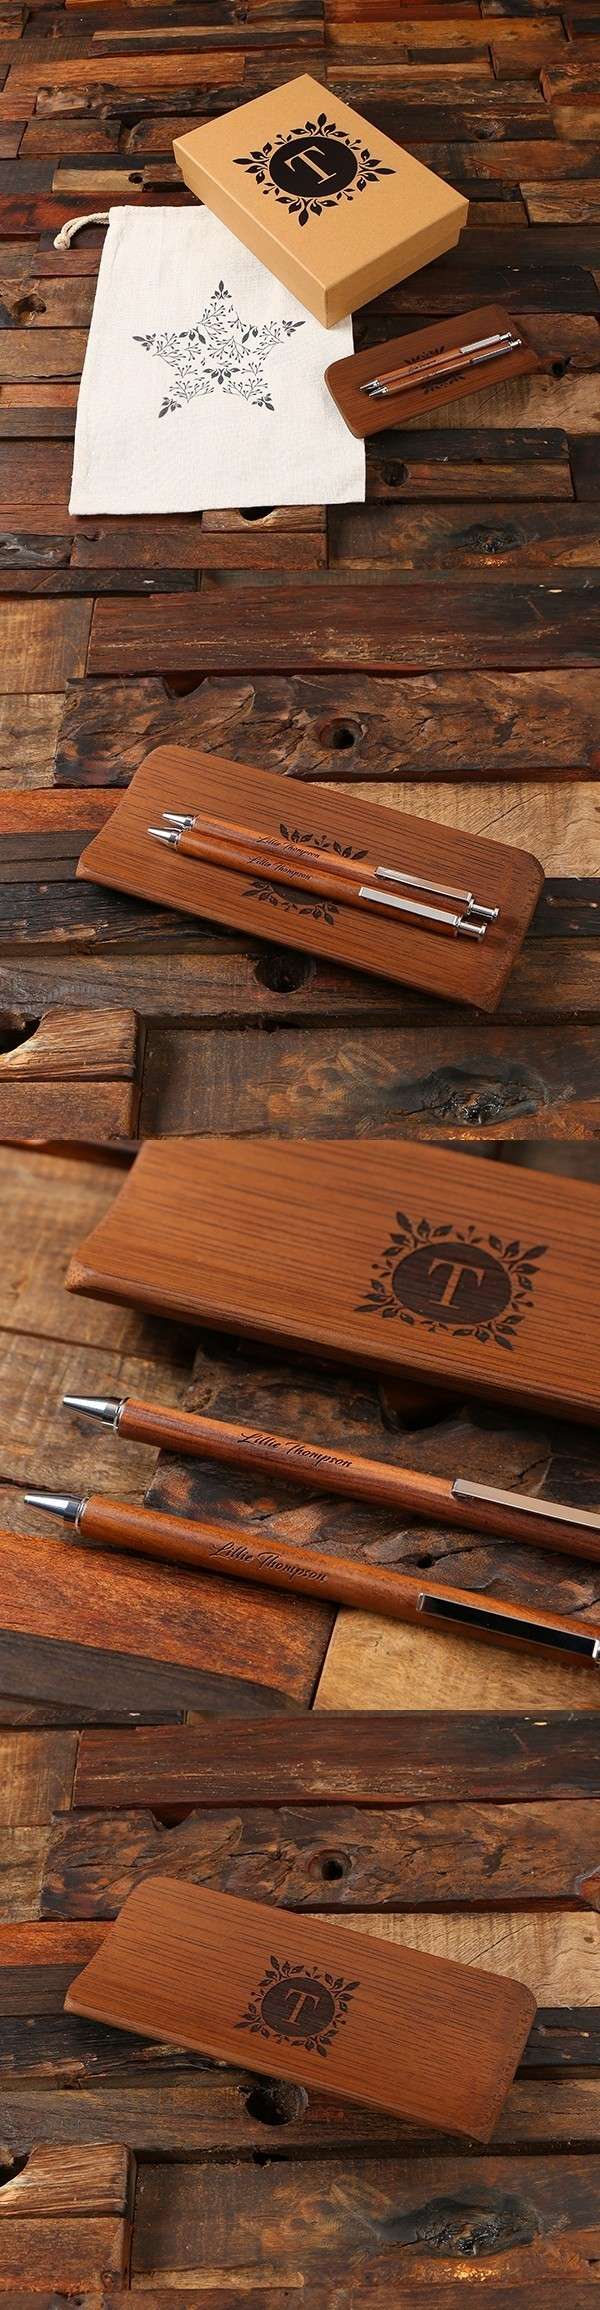 Personalized Walnut Wood Pens & Wood Stationery Tray in Kraft Gift-Box